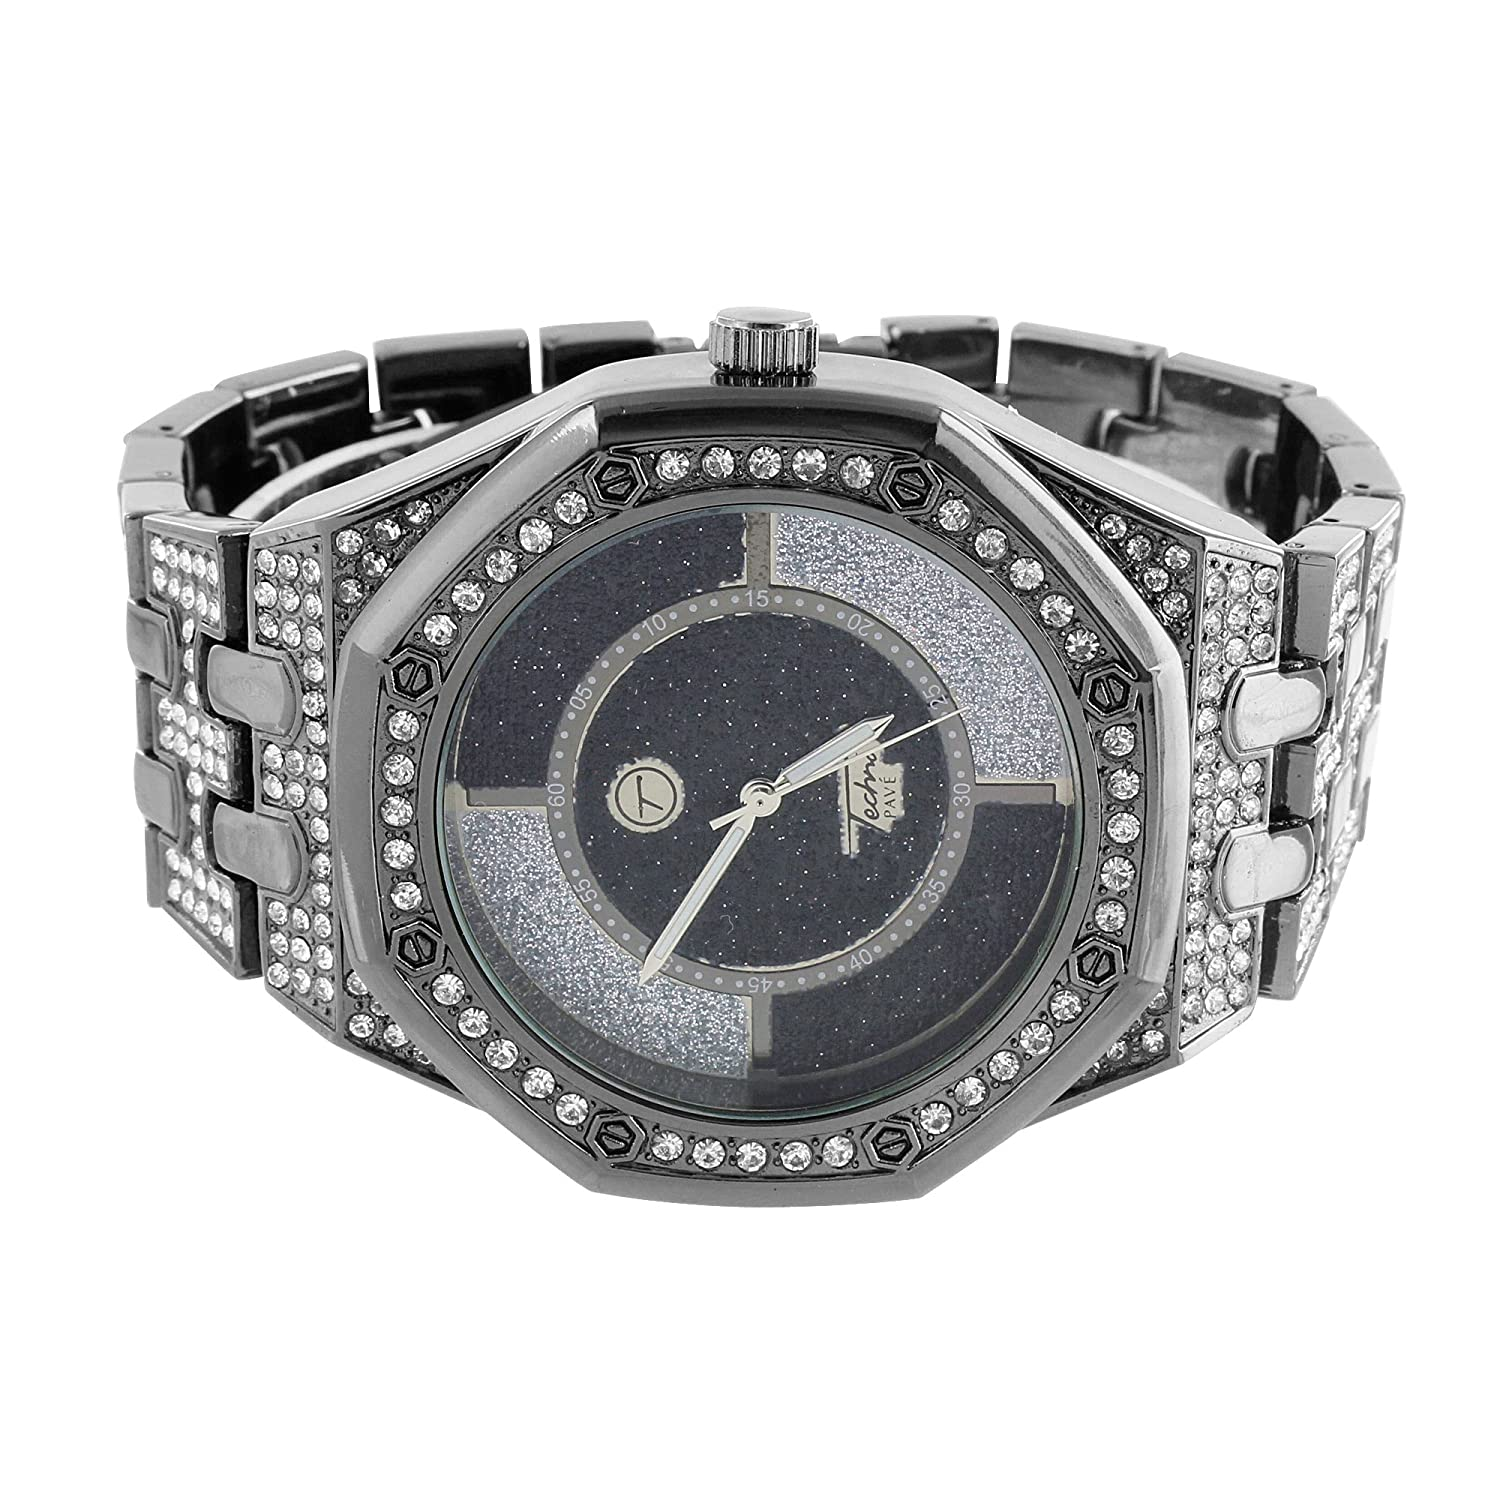 bb94b4c65c271 Mens Octagon Face Watch Iced Out Simulated Diamonds Black AP-01 ...